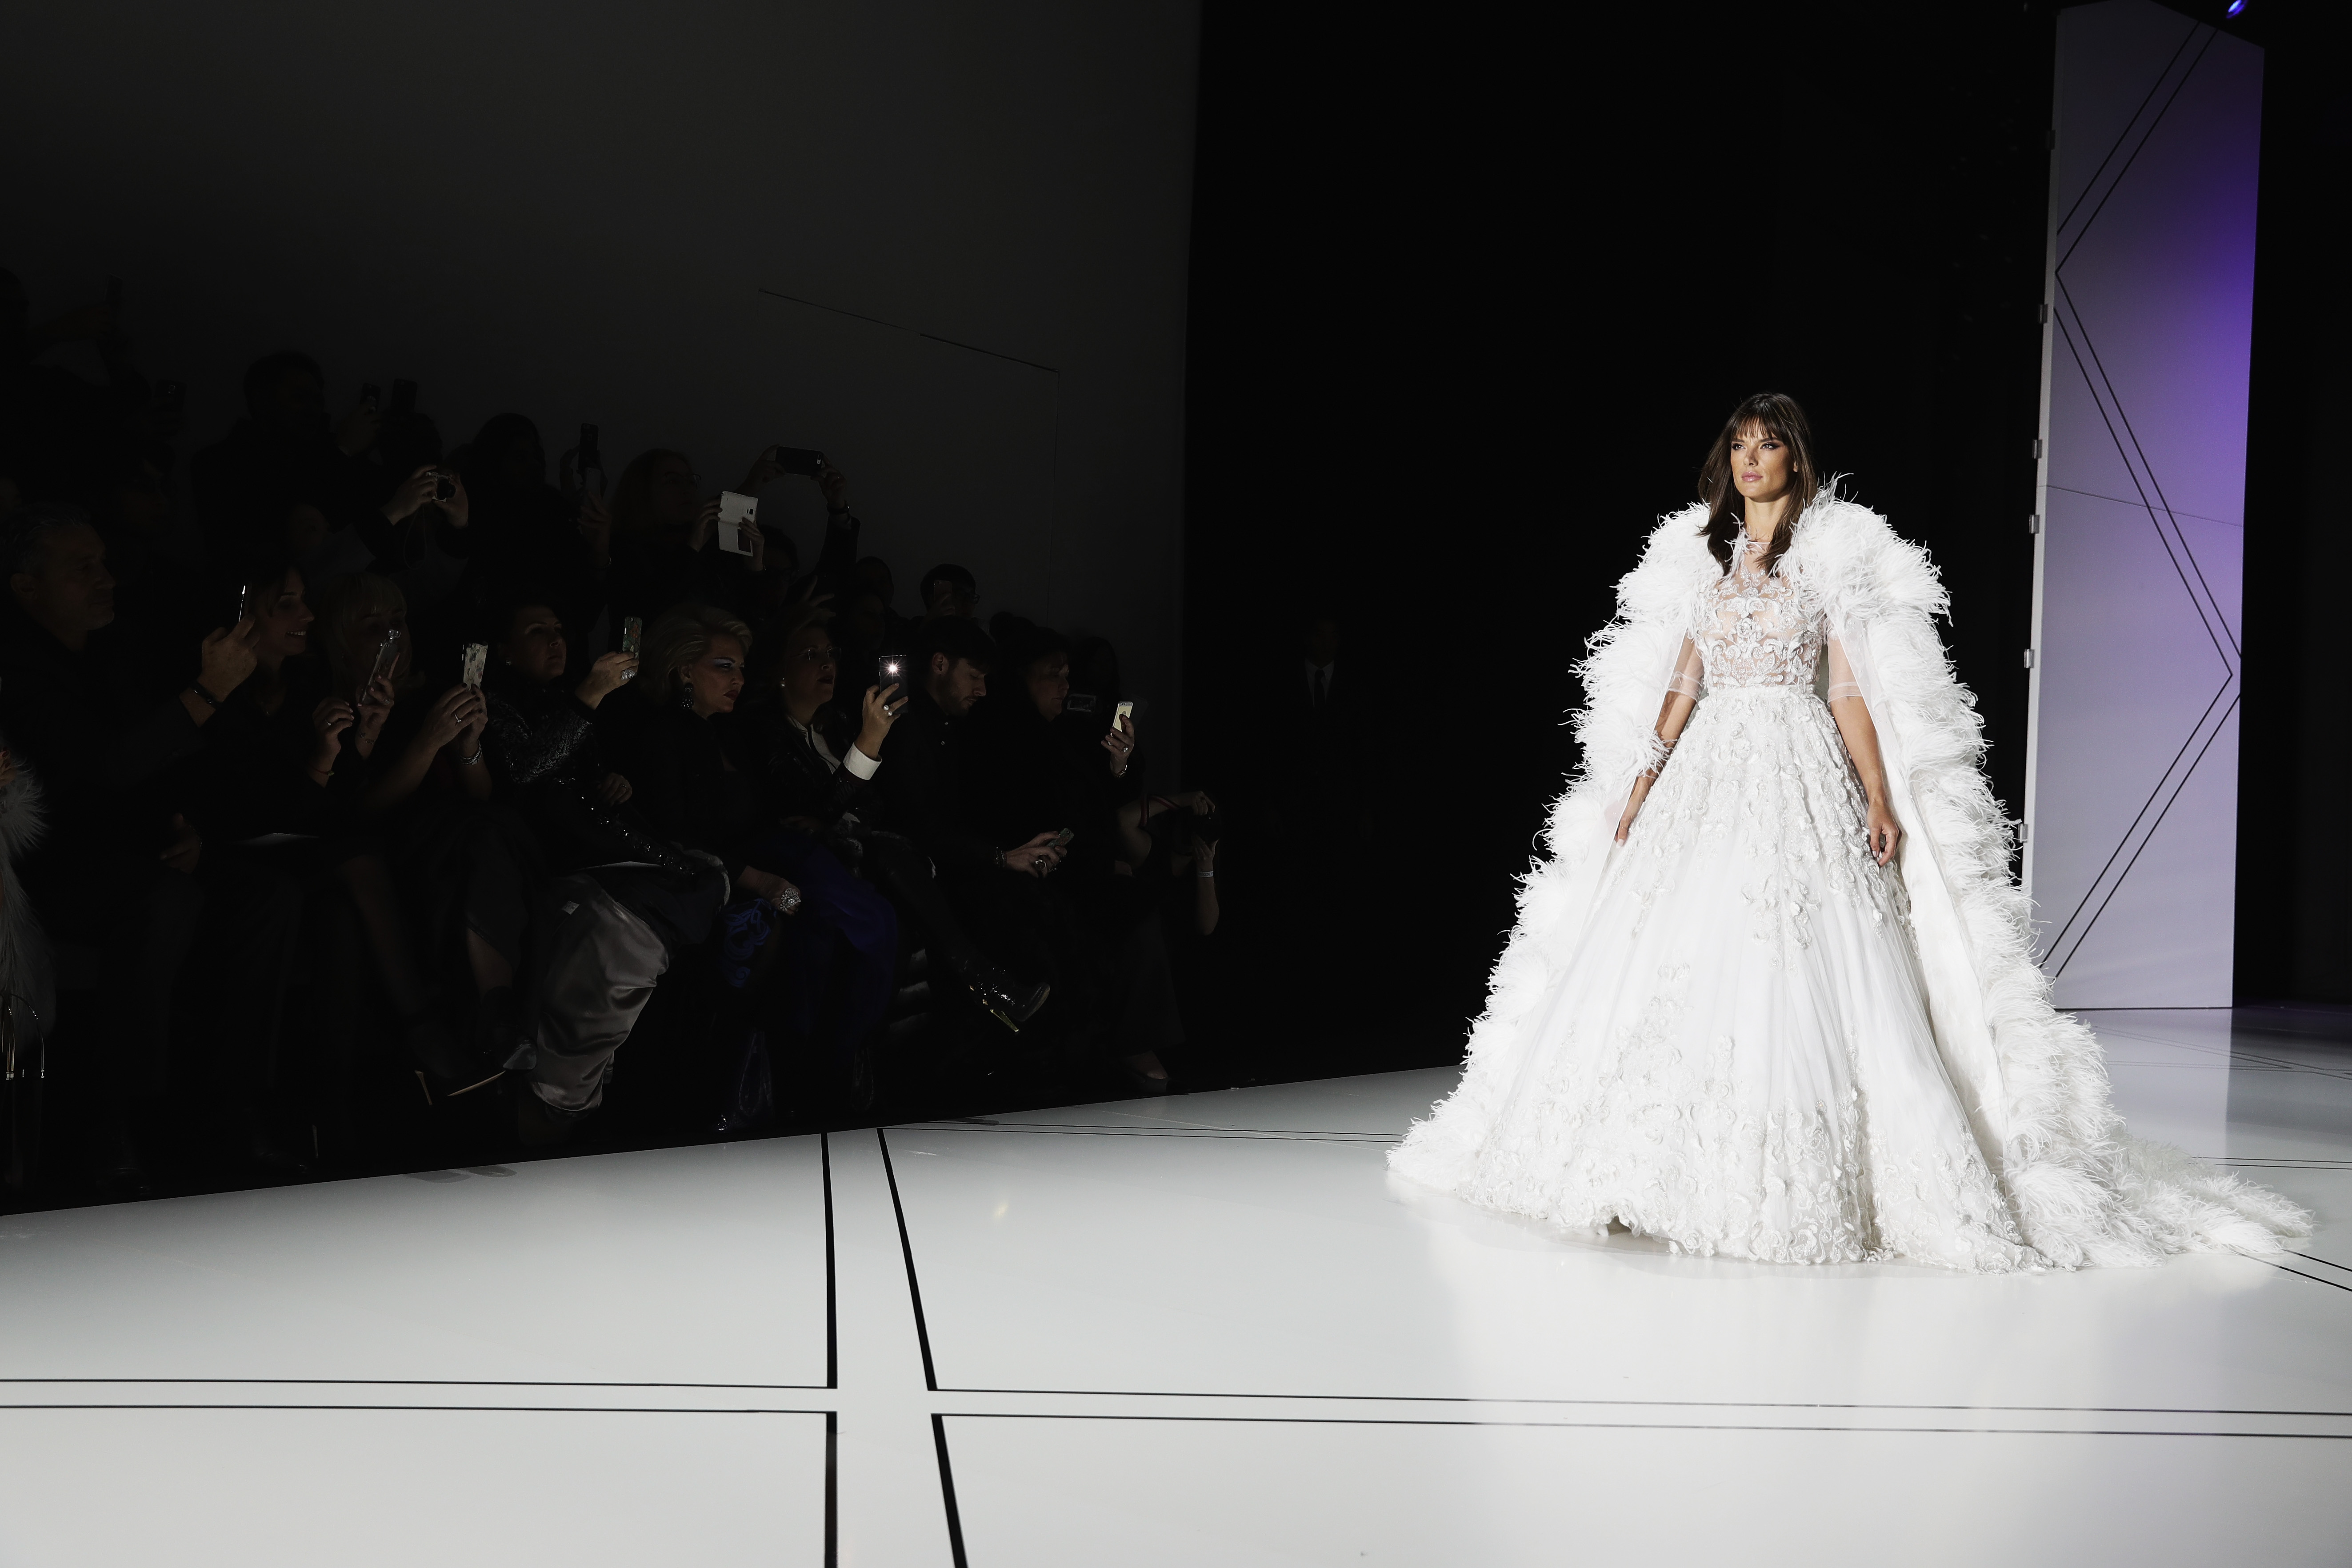 PARIS, FRANCE - JANUARY 23: (EDITORS NOTE: Image has been desaturated.) A model walks the ruway during the Ralph & Russo show on January 23, 2017 in Paris, France. (Photo by Vittorio Zunino Celotto/Getty Images)